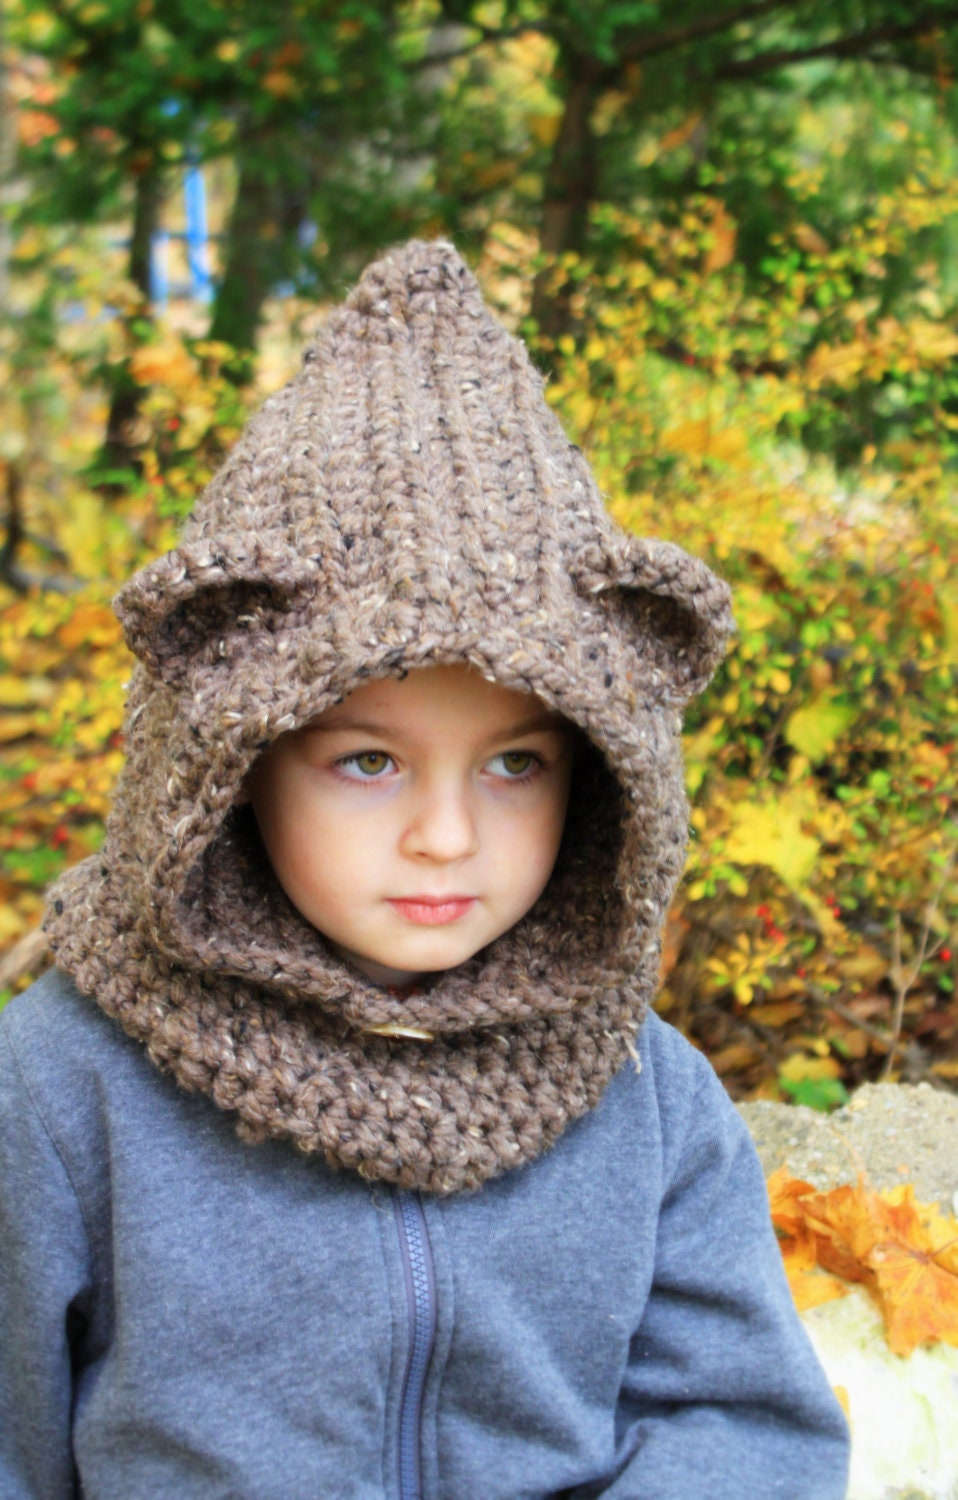 Free Teddy Bear Cowl Crochet Pattern : Crochet Teddy Bear Cowl Pattern images